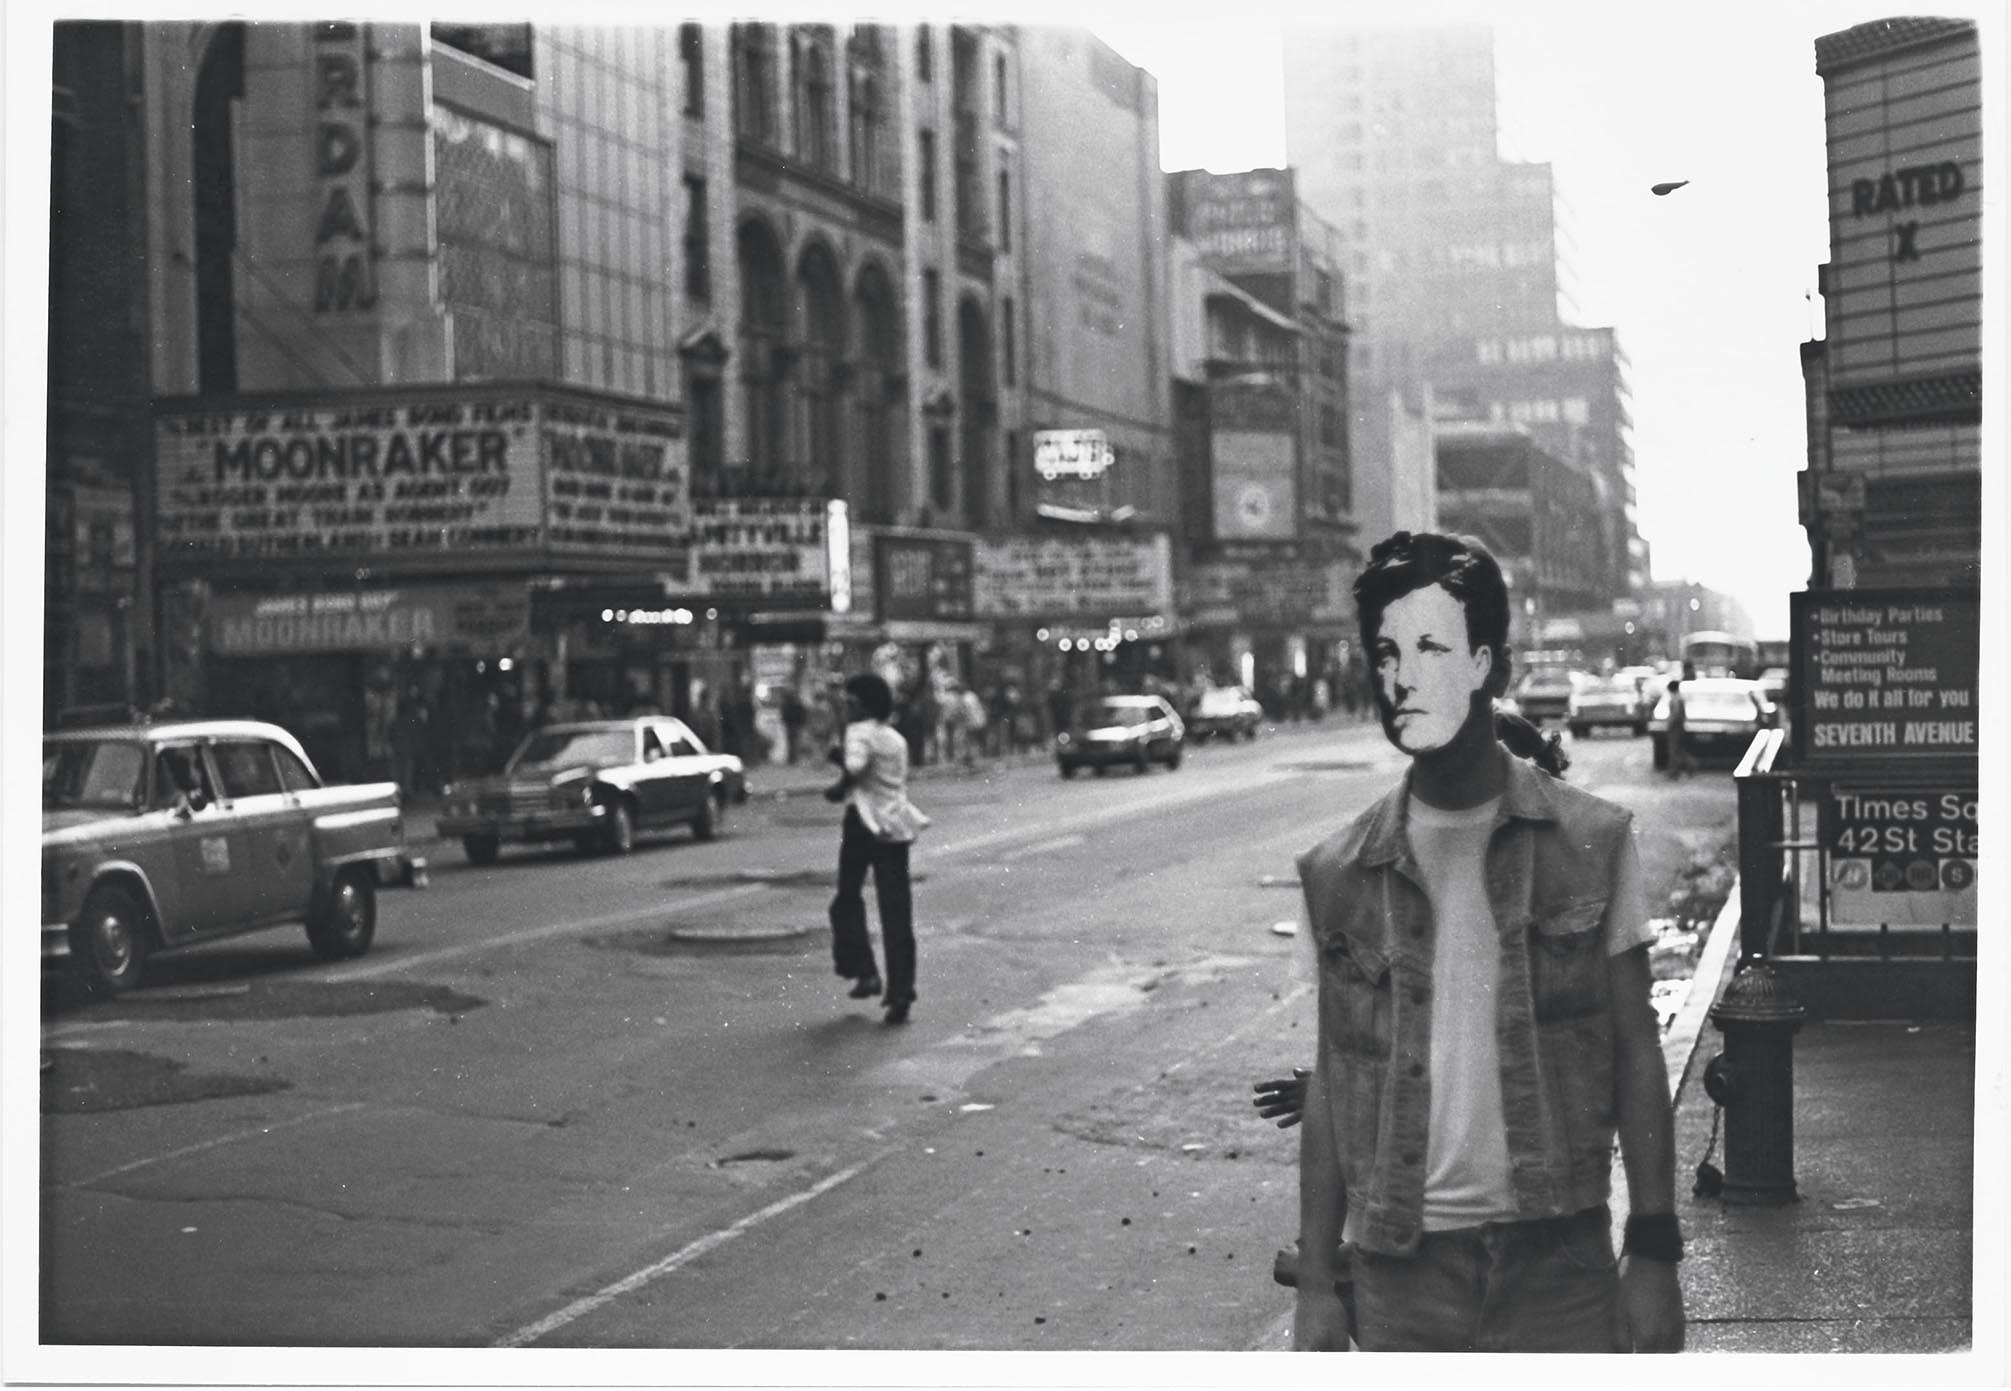 Arthur Rimbaud in New York, 1978-1979. The Wojnarowicz exhibit opens in Madrid in late May.